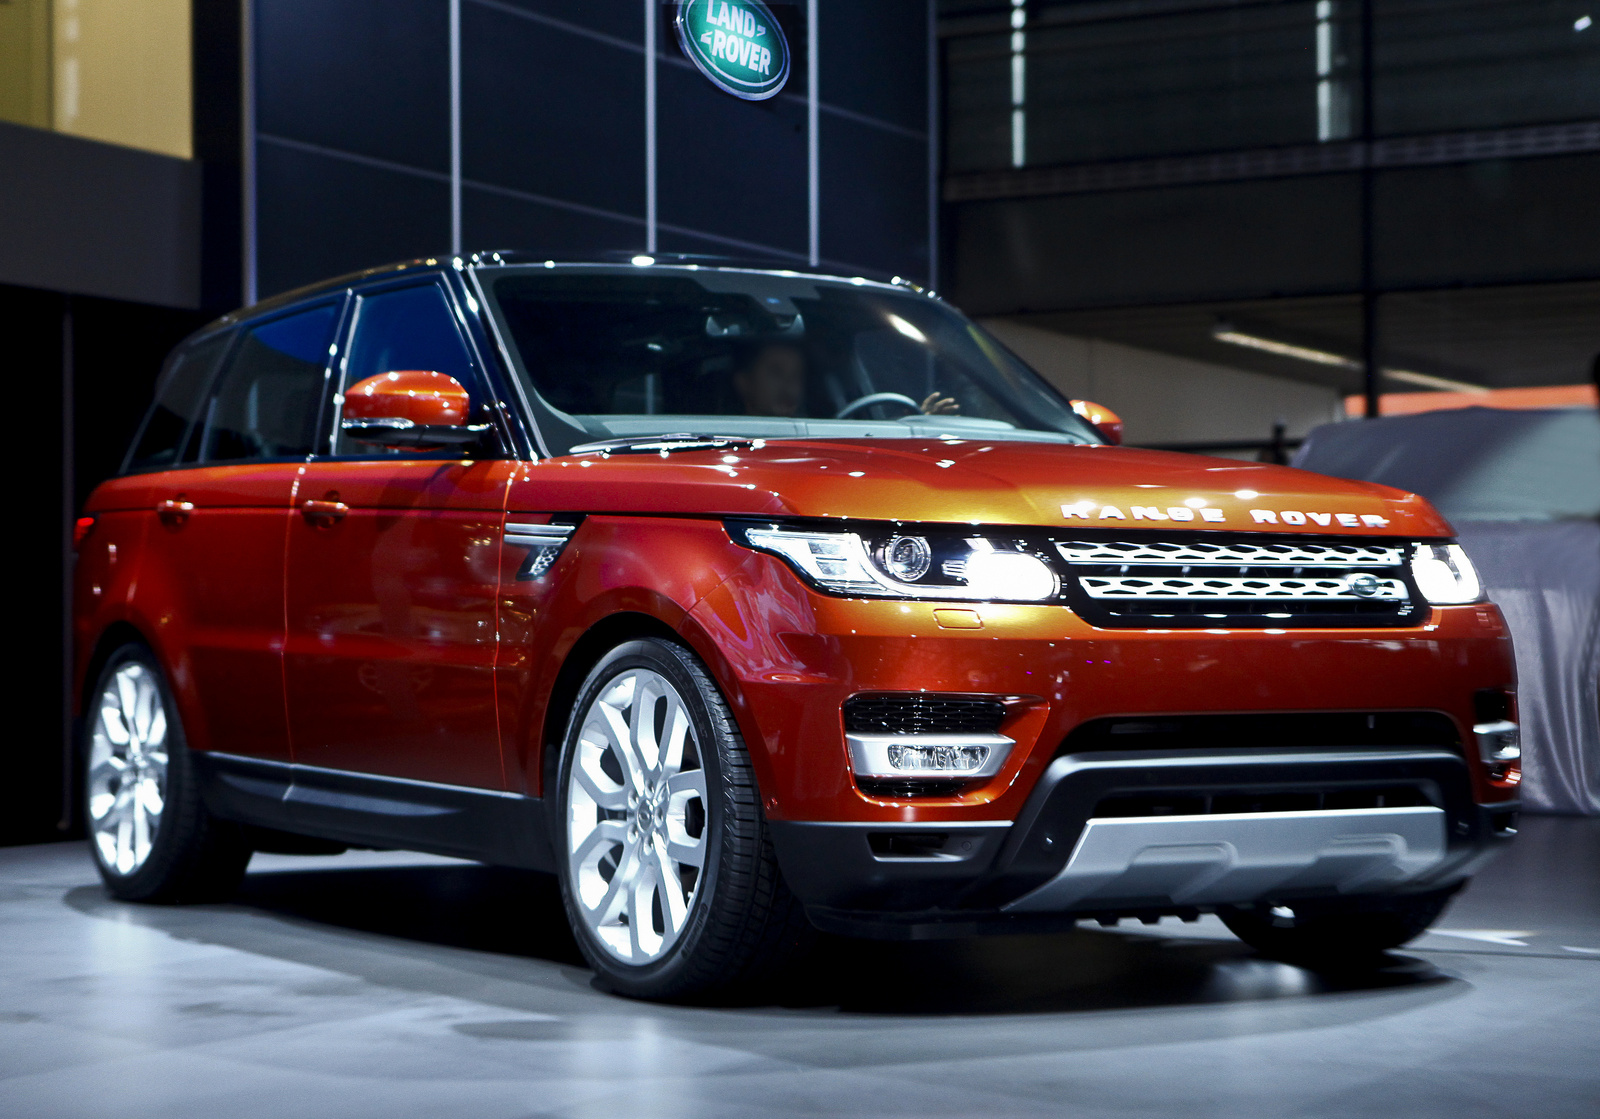 2014 land rover range rover sport review cargurus. Black Bedroom Furniture Sets. Home Design Ideas